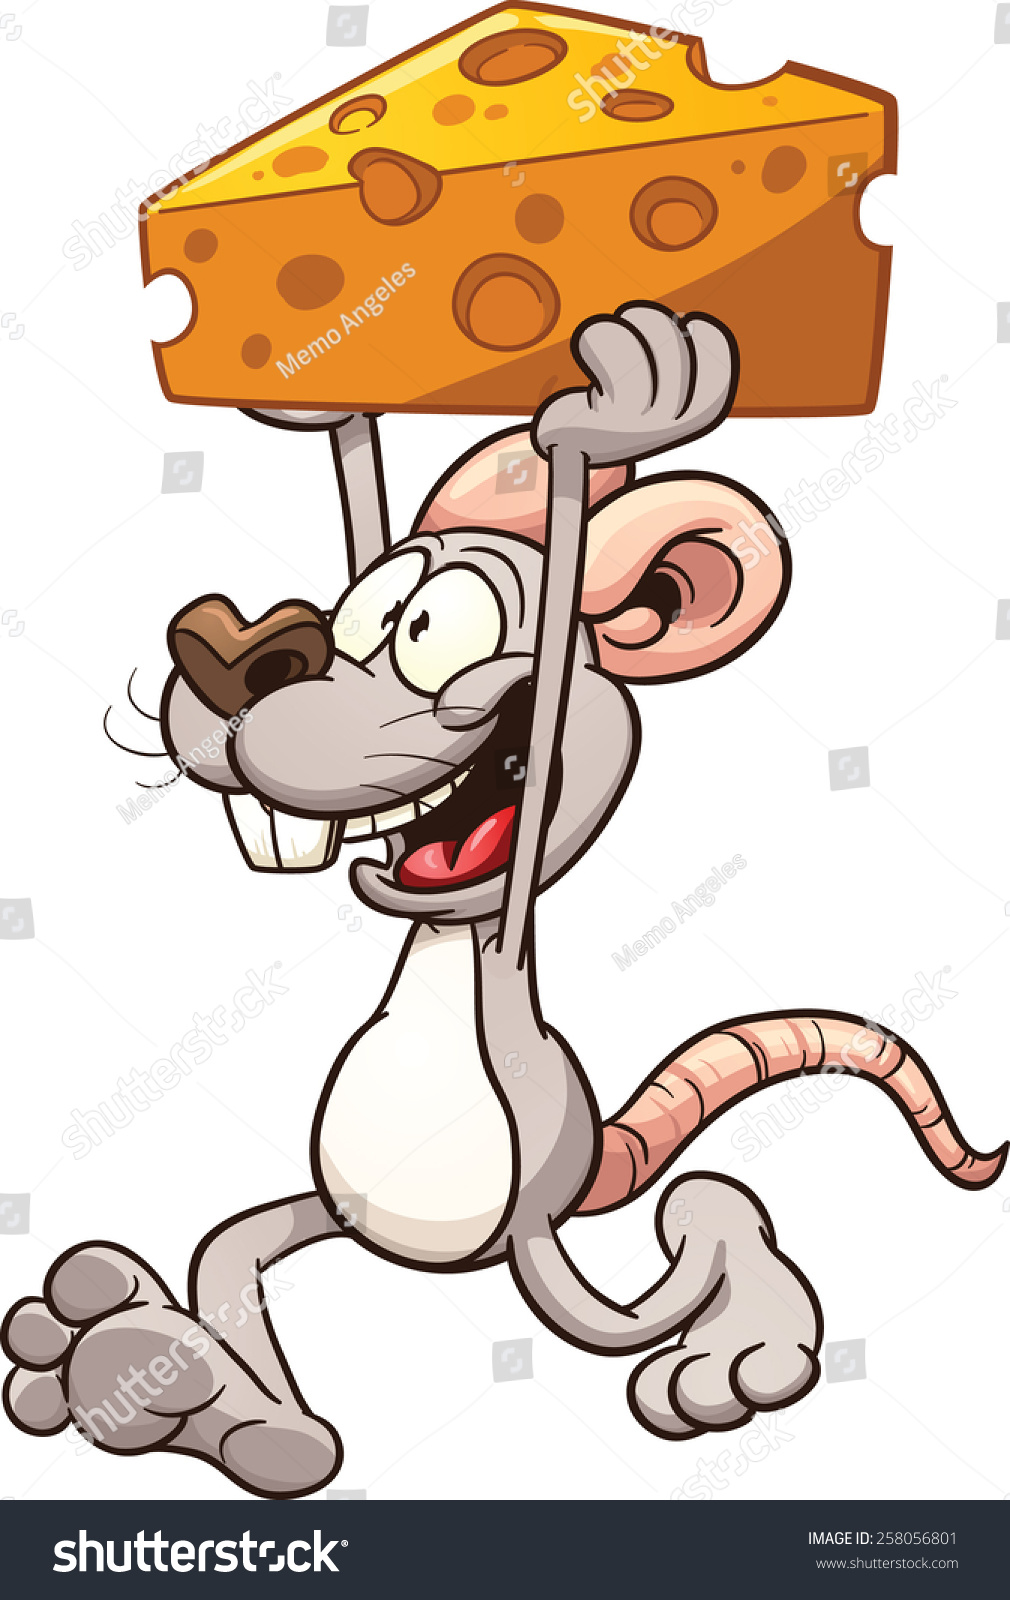 Simple Mouse Halloween Costume: Cartoon Mouse Carrying Big Piece Cheese Stock Vector